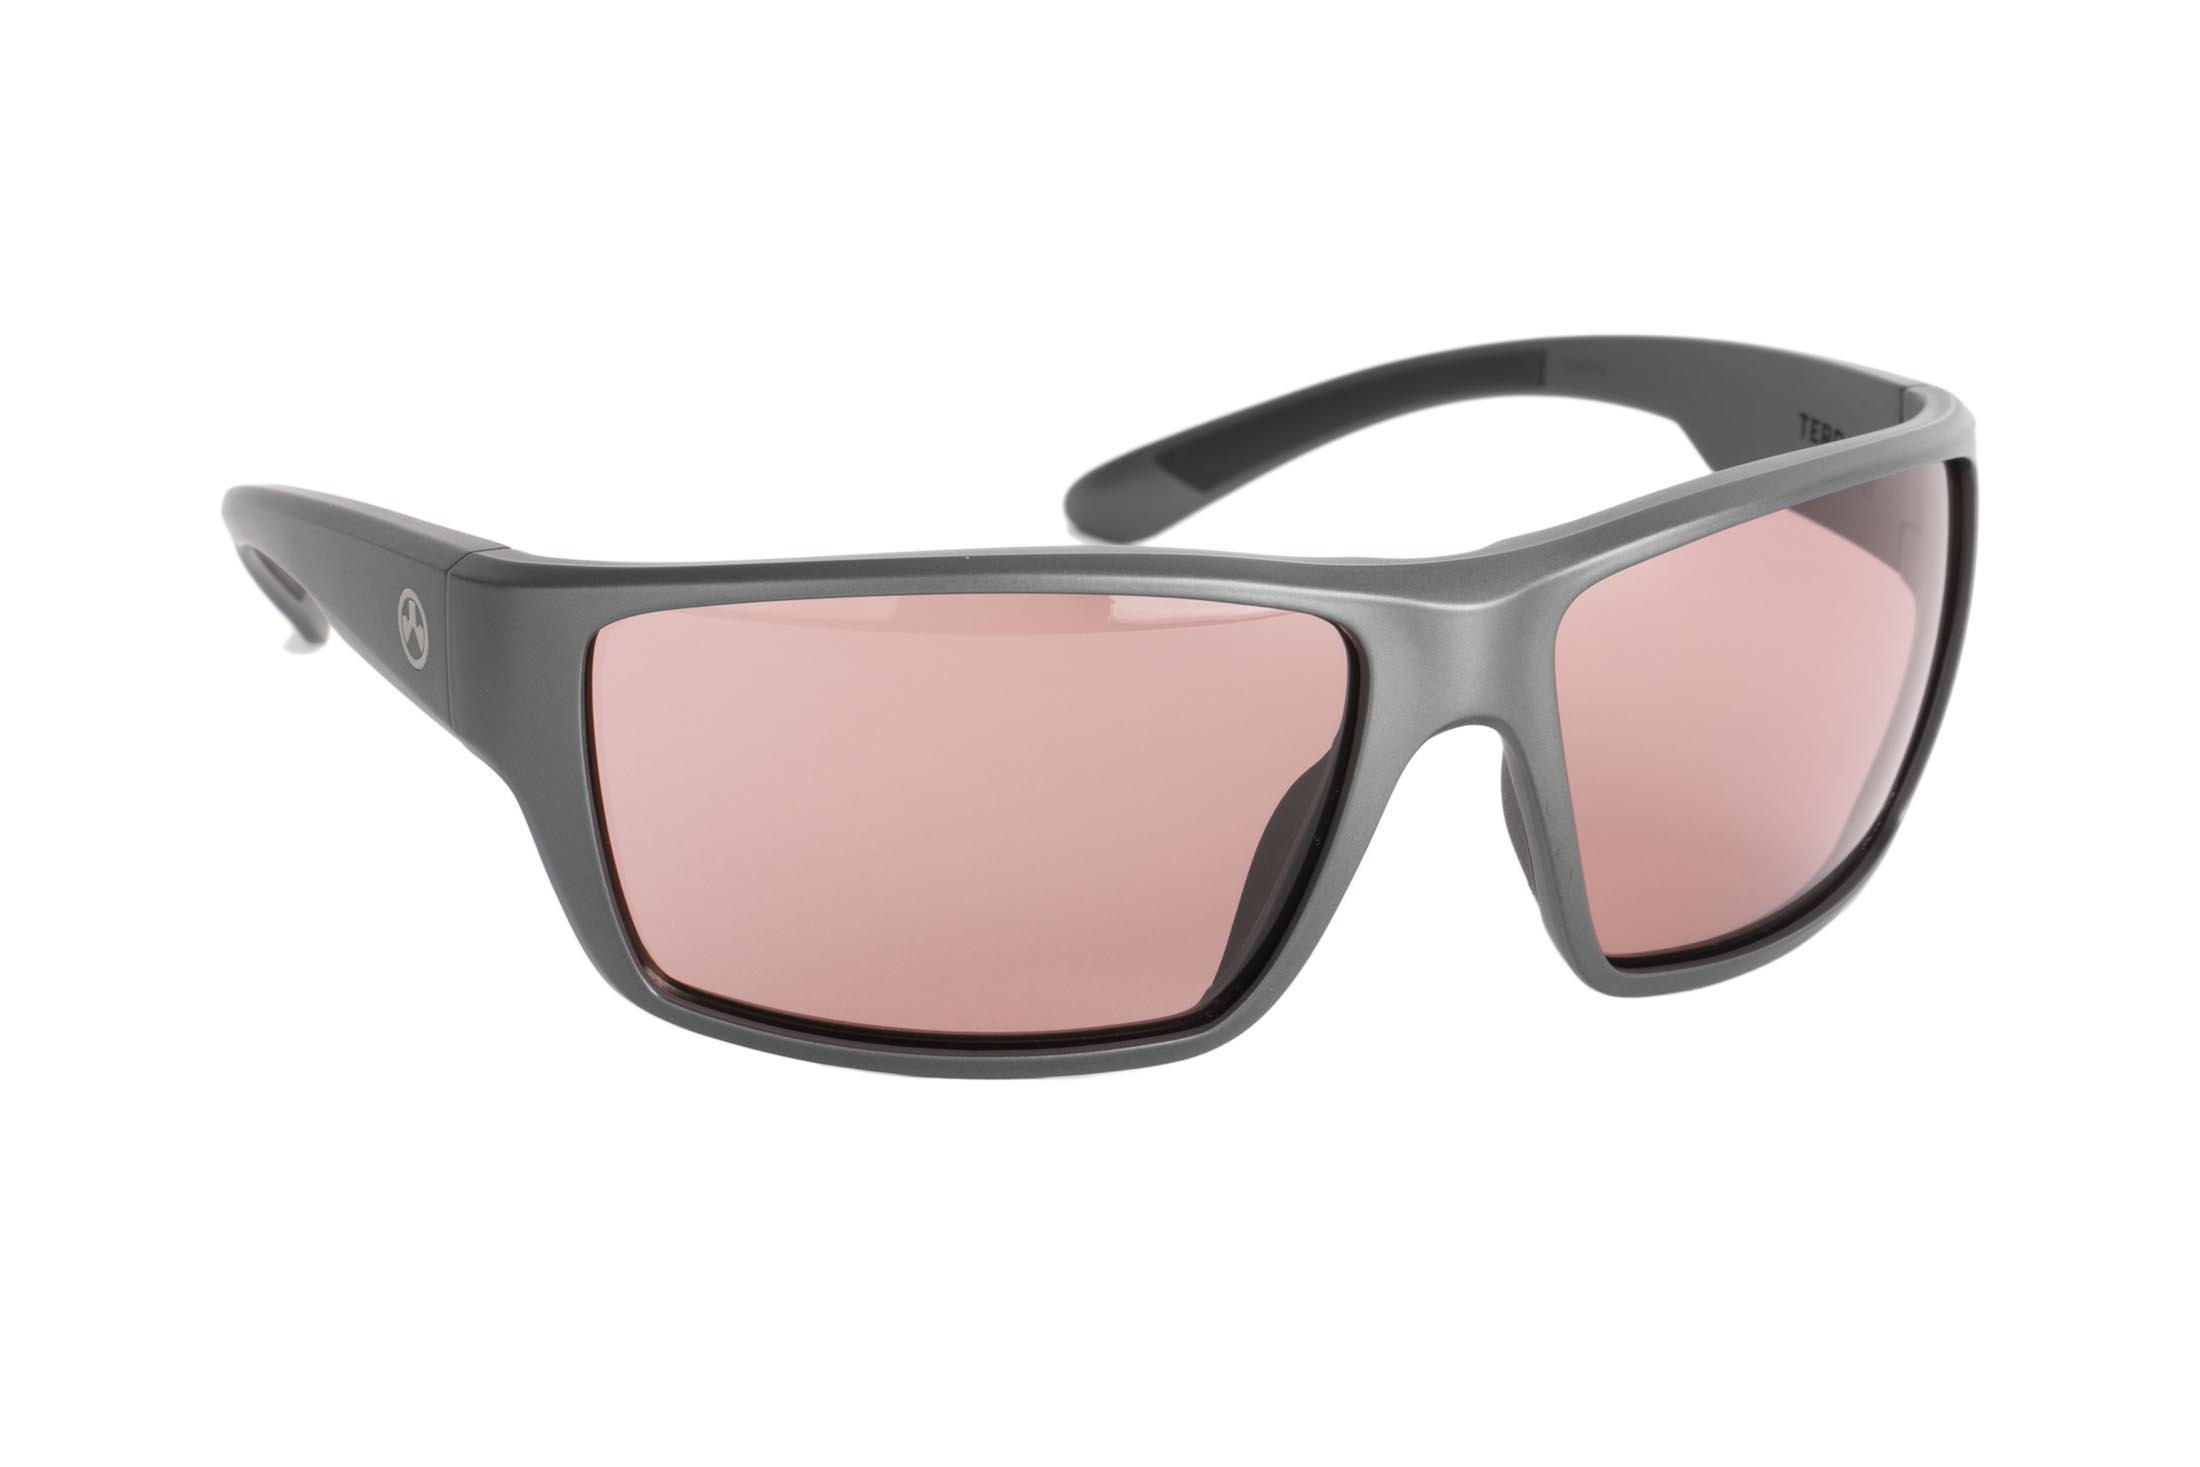 Magpul Terrain ballistic sunglasses with gray frame and rose lenses are ideal for medium-to-large sized shooters